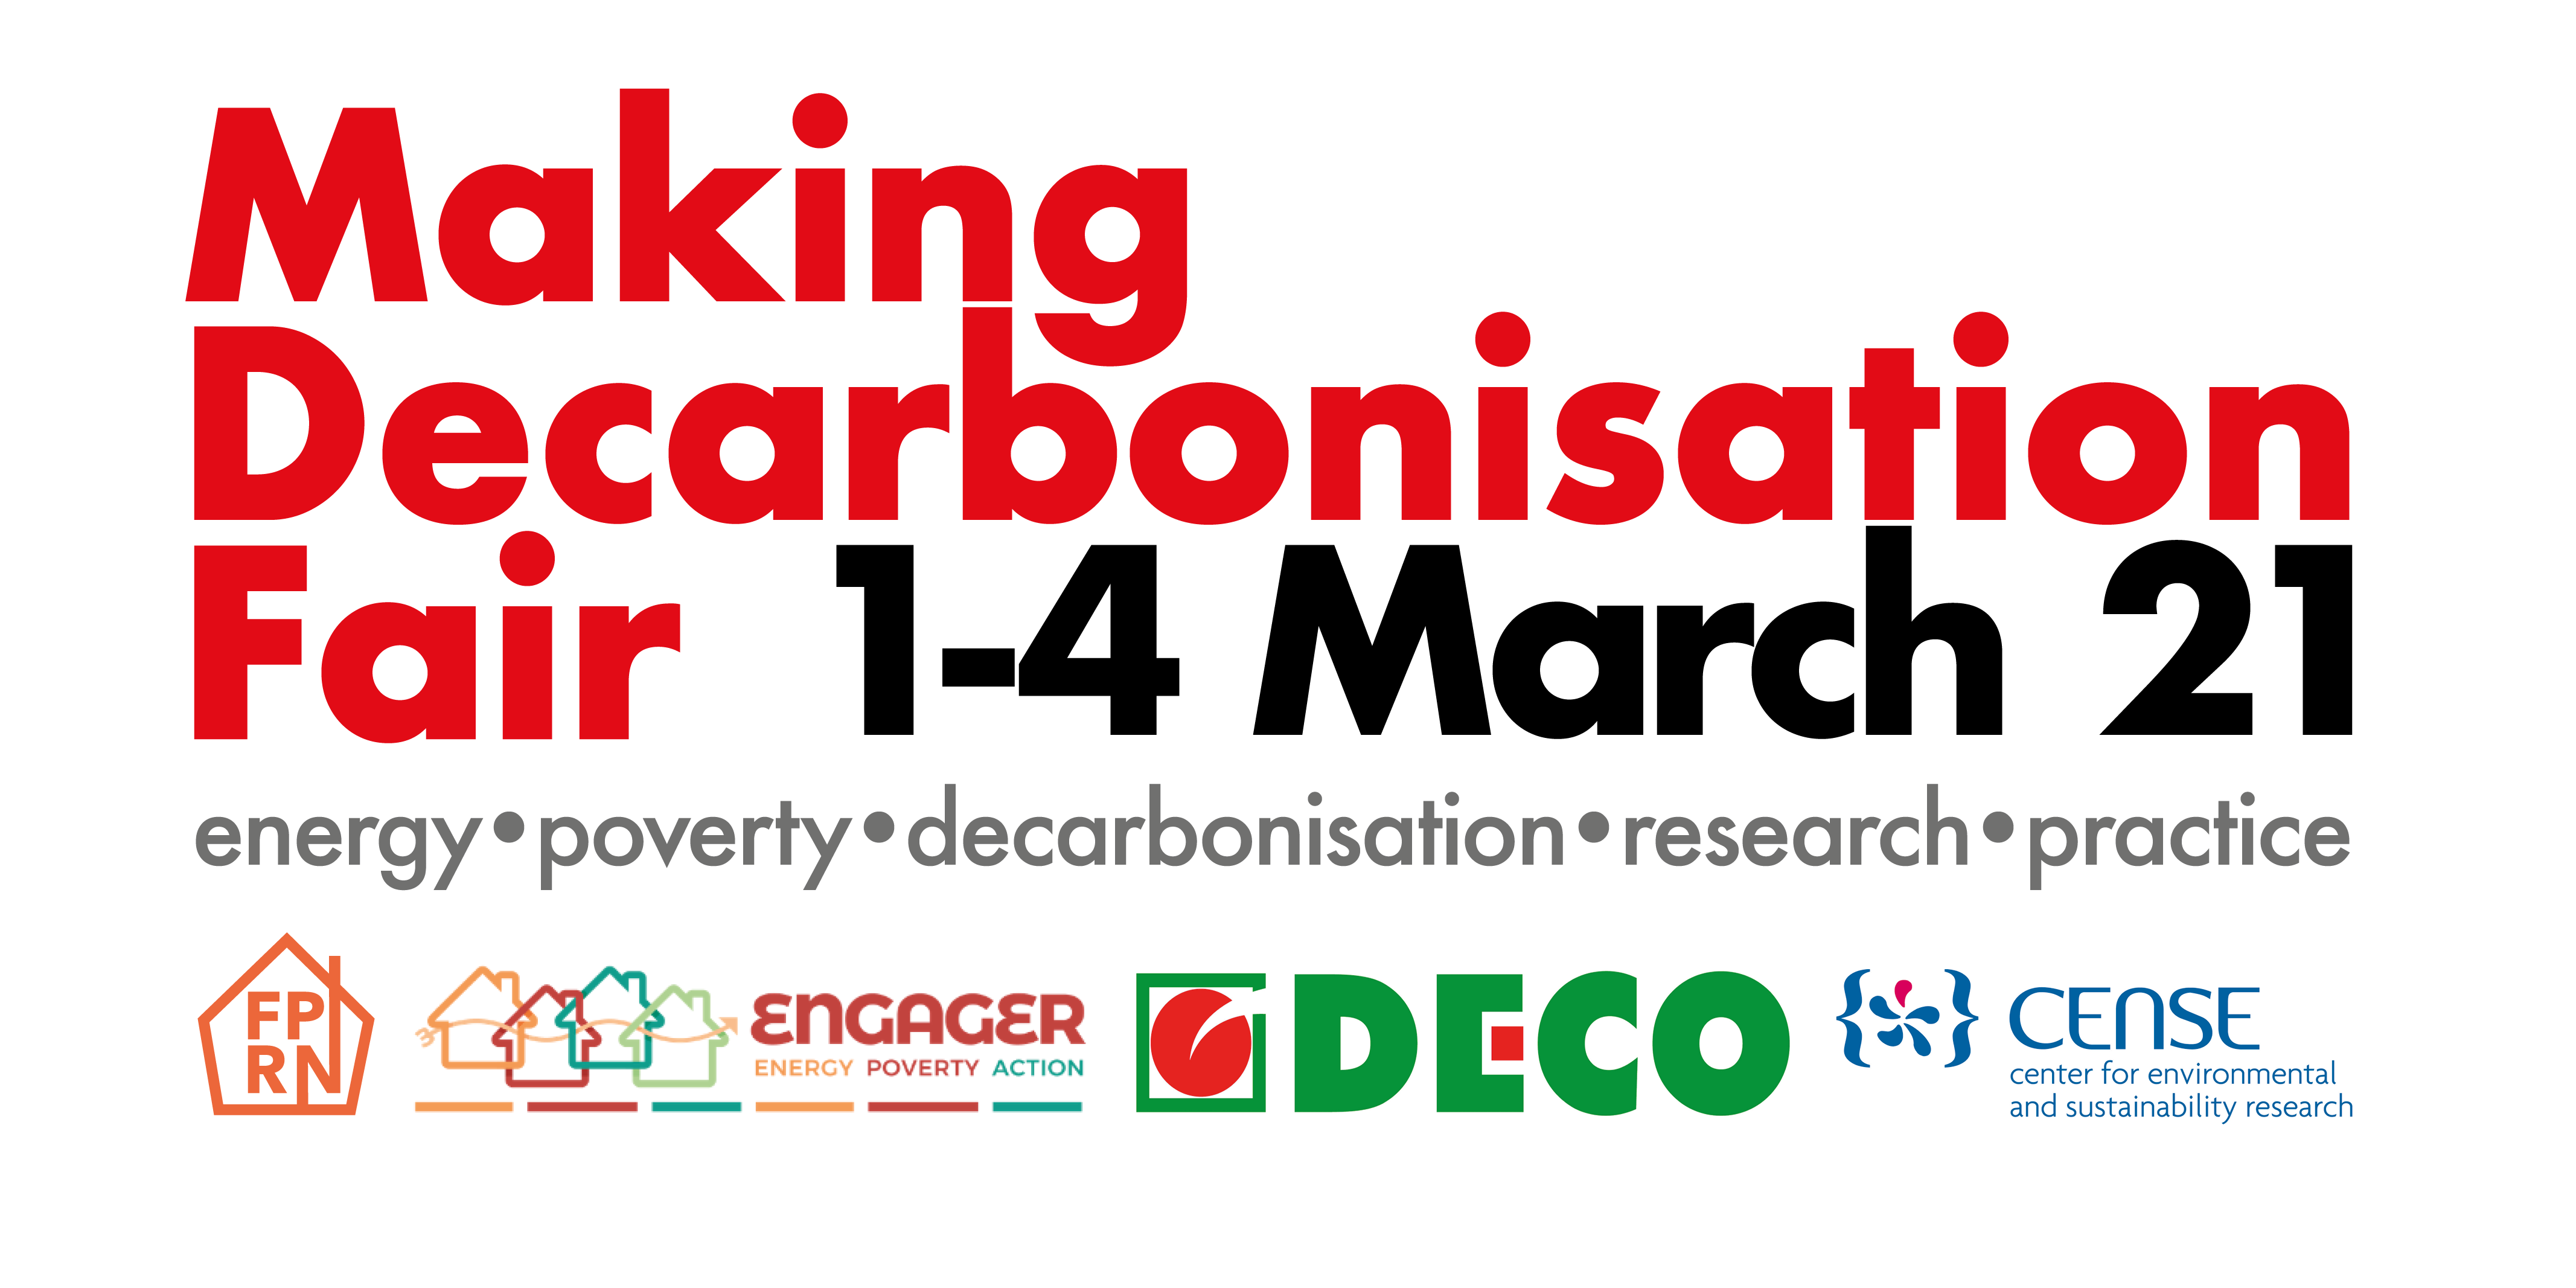 Making Decarbonisation Fair